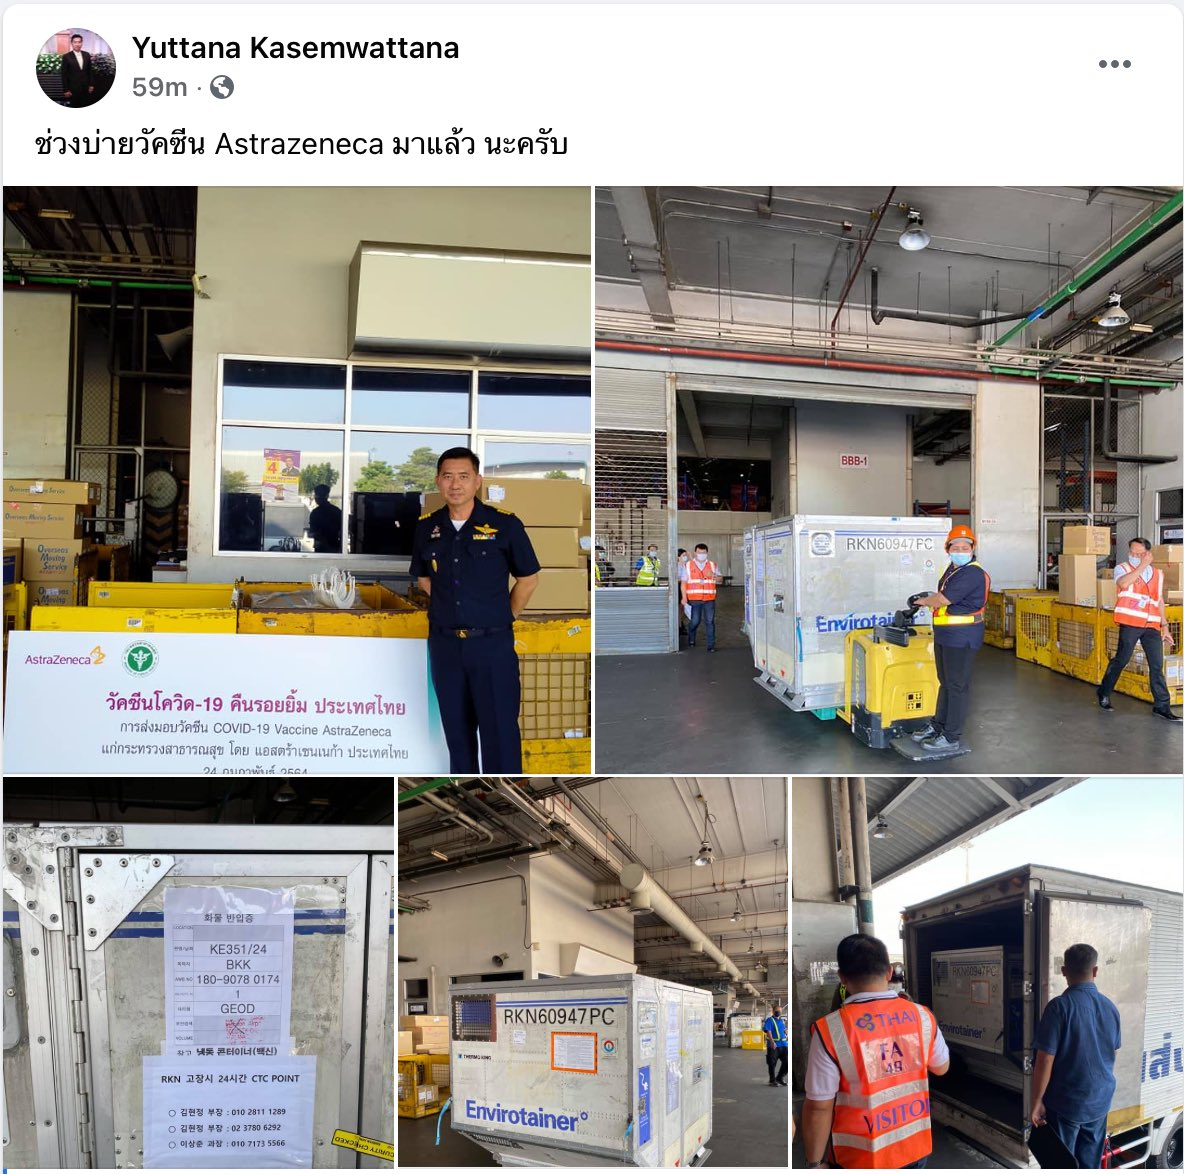 Meanwhile, the @AstraZeneca #COVID19 vaccines (117,000 doses) have also arrived in Thailand this afternoon. But the only evidence pointing to that is a Facebook post by Thai customs officer.